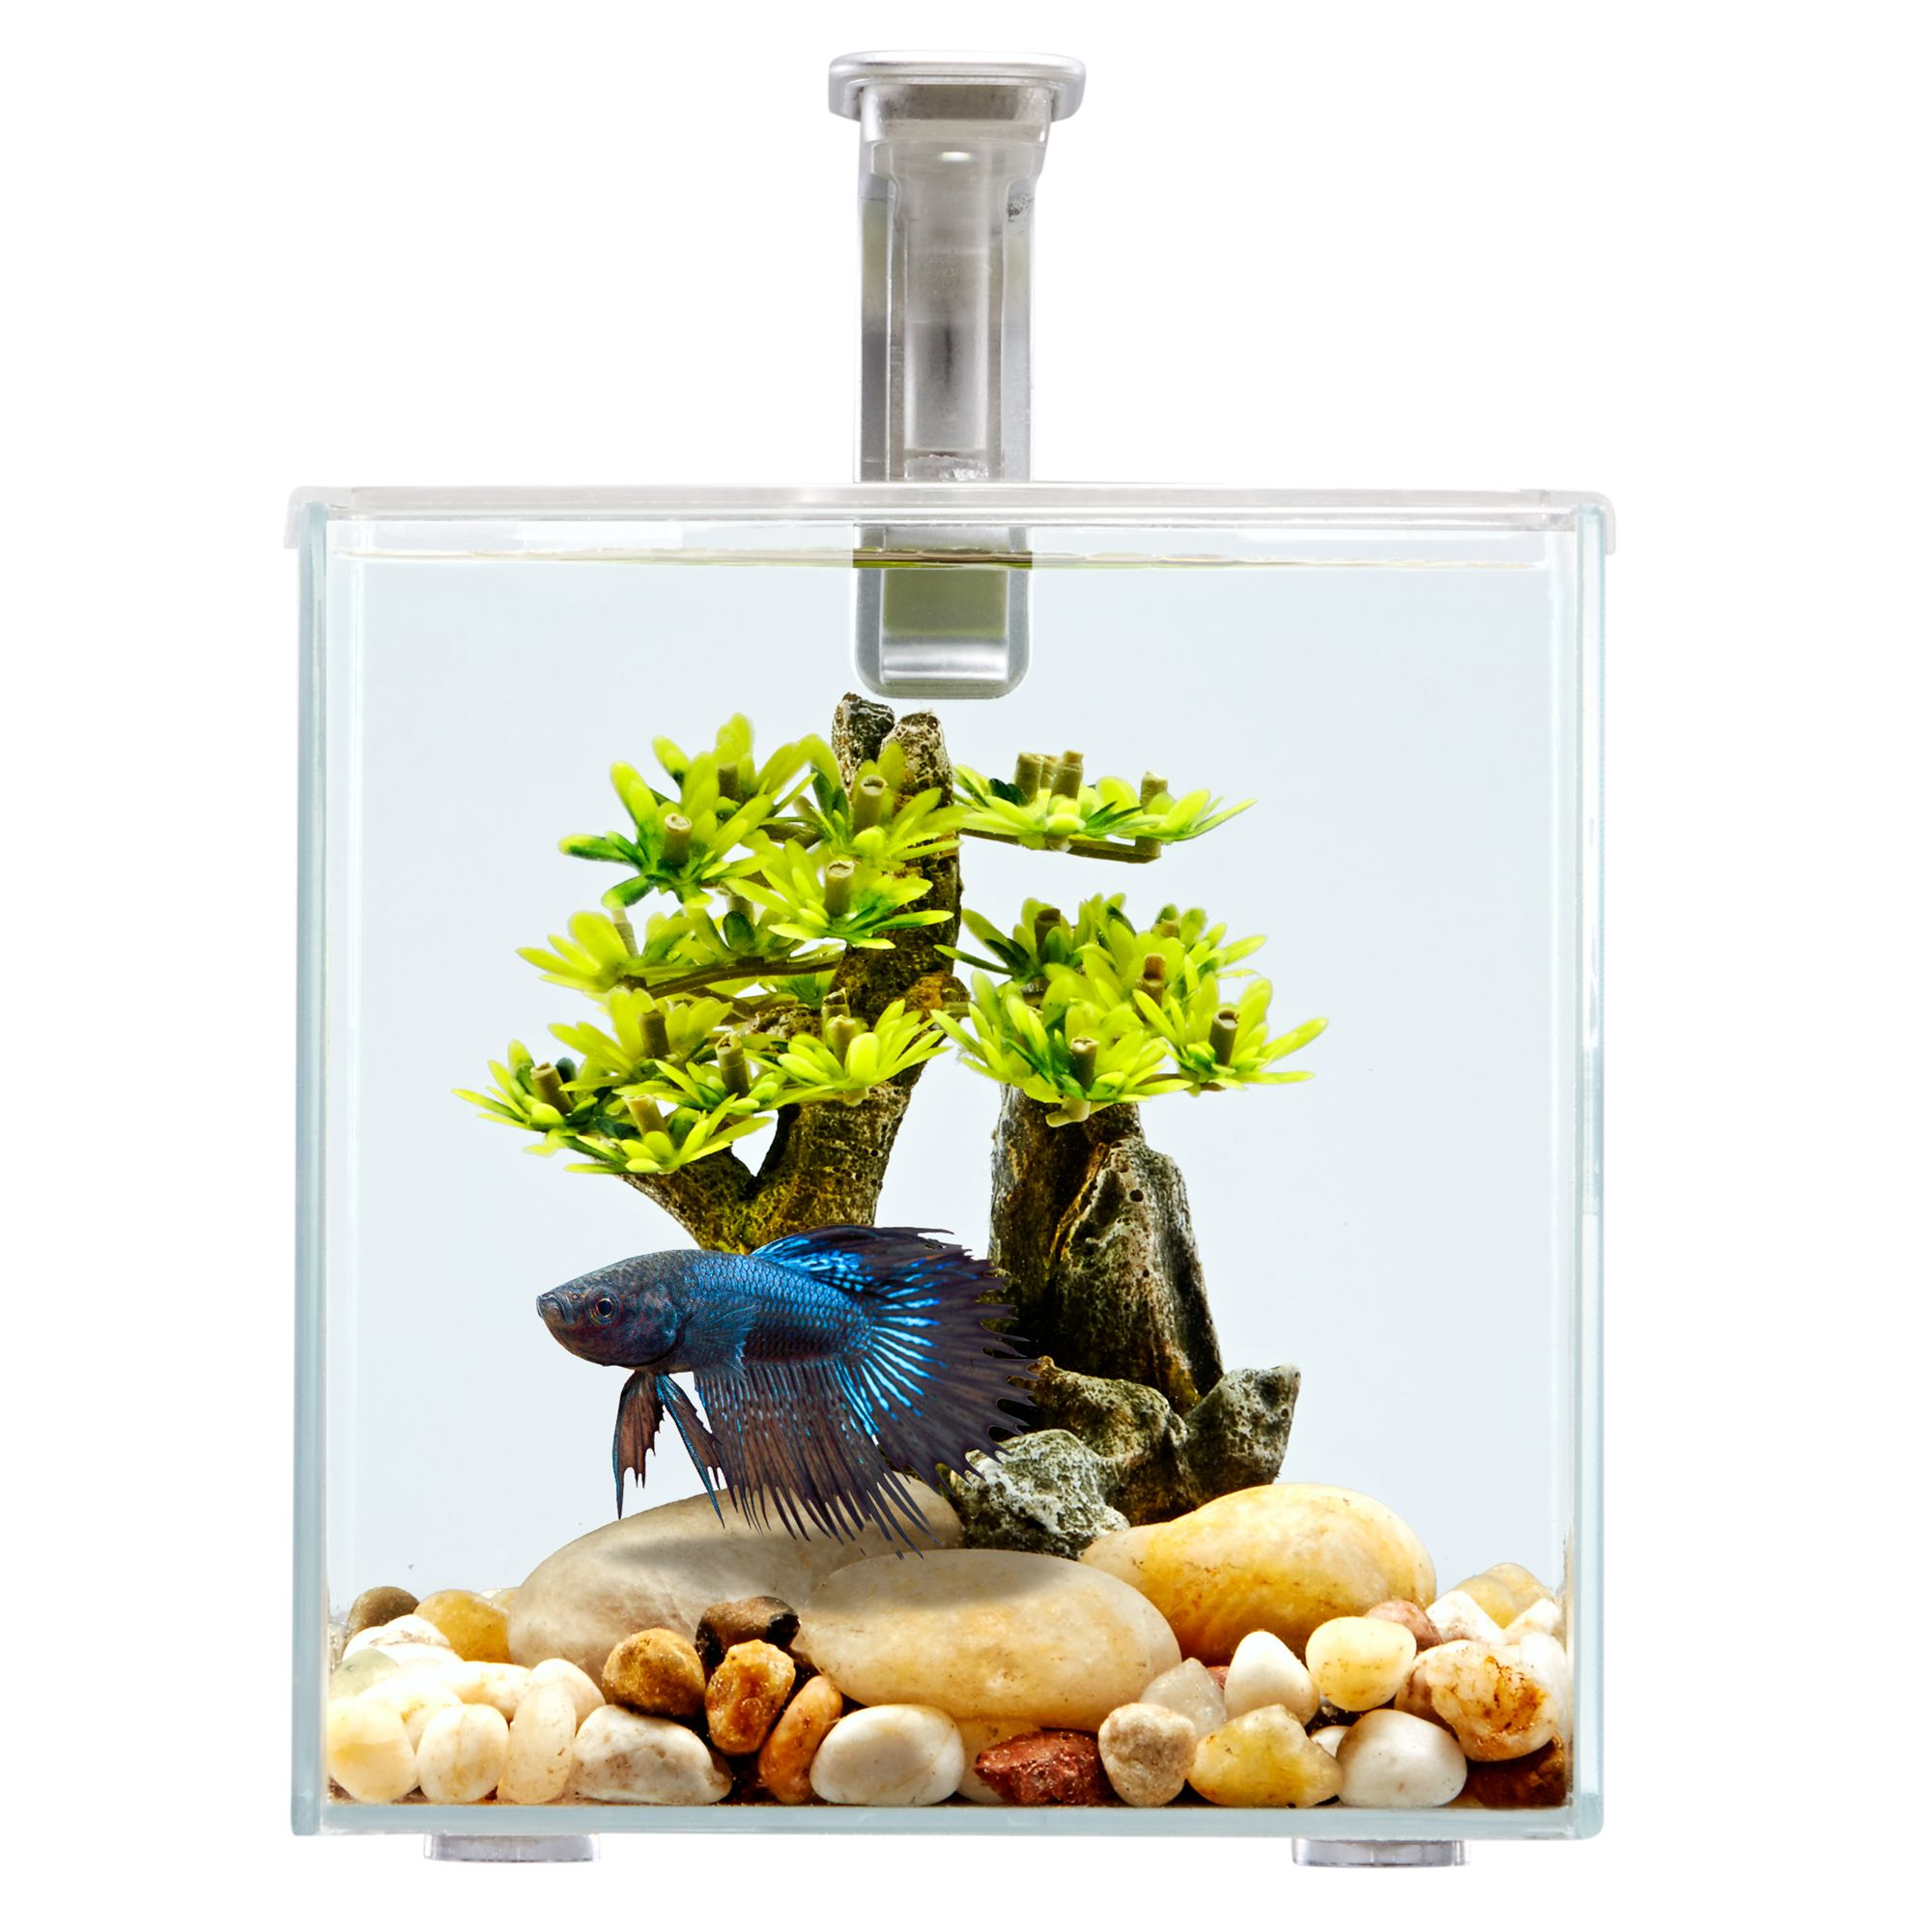 Top fin betta aquarium water conditioner for 2 gallon betta fish tank